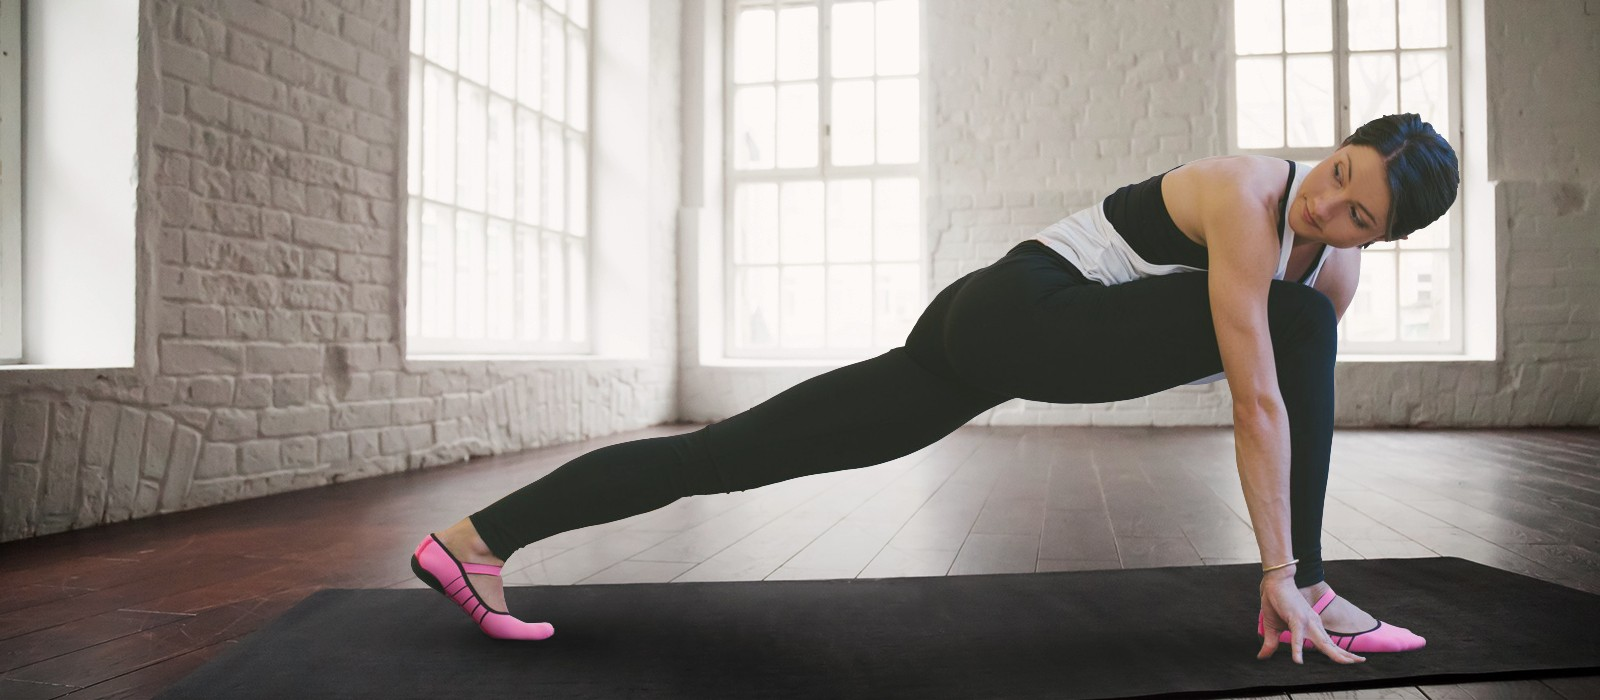 image - Workout with our Barre and Pilates fitness footwear.